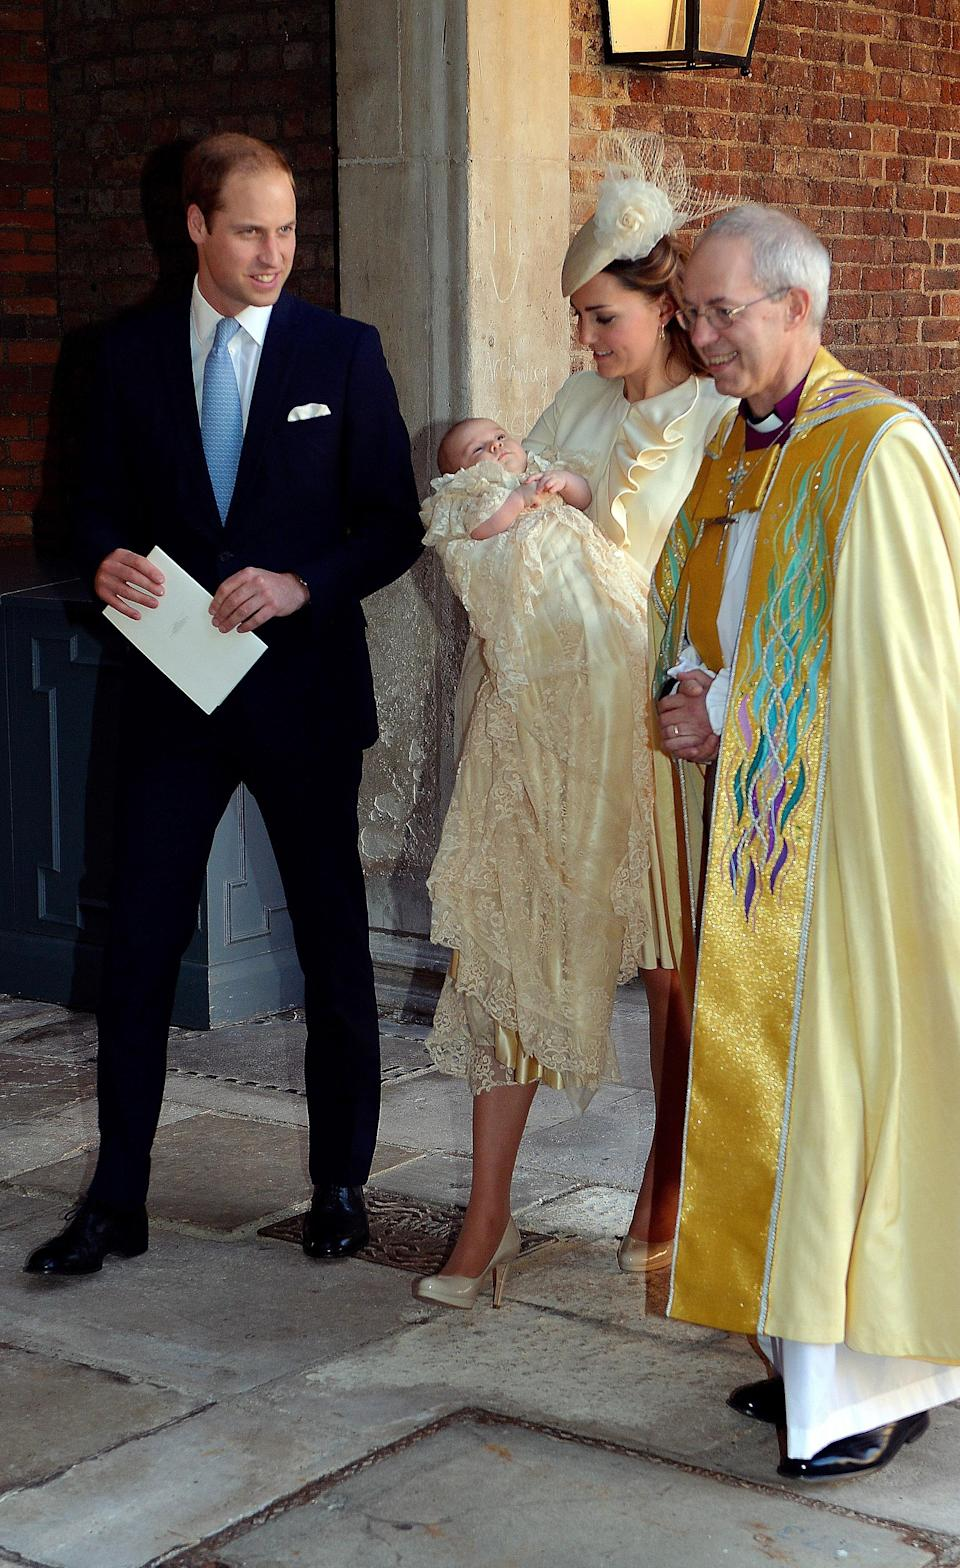 On October 23 2013, the Duchess of Cambridge wore a ruffled dress by Alexander McQueen for Prince George's christening [Photo: Getty]